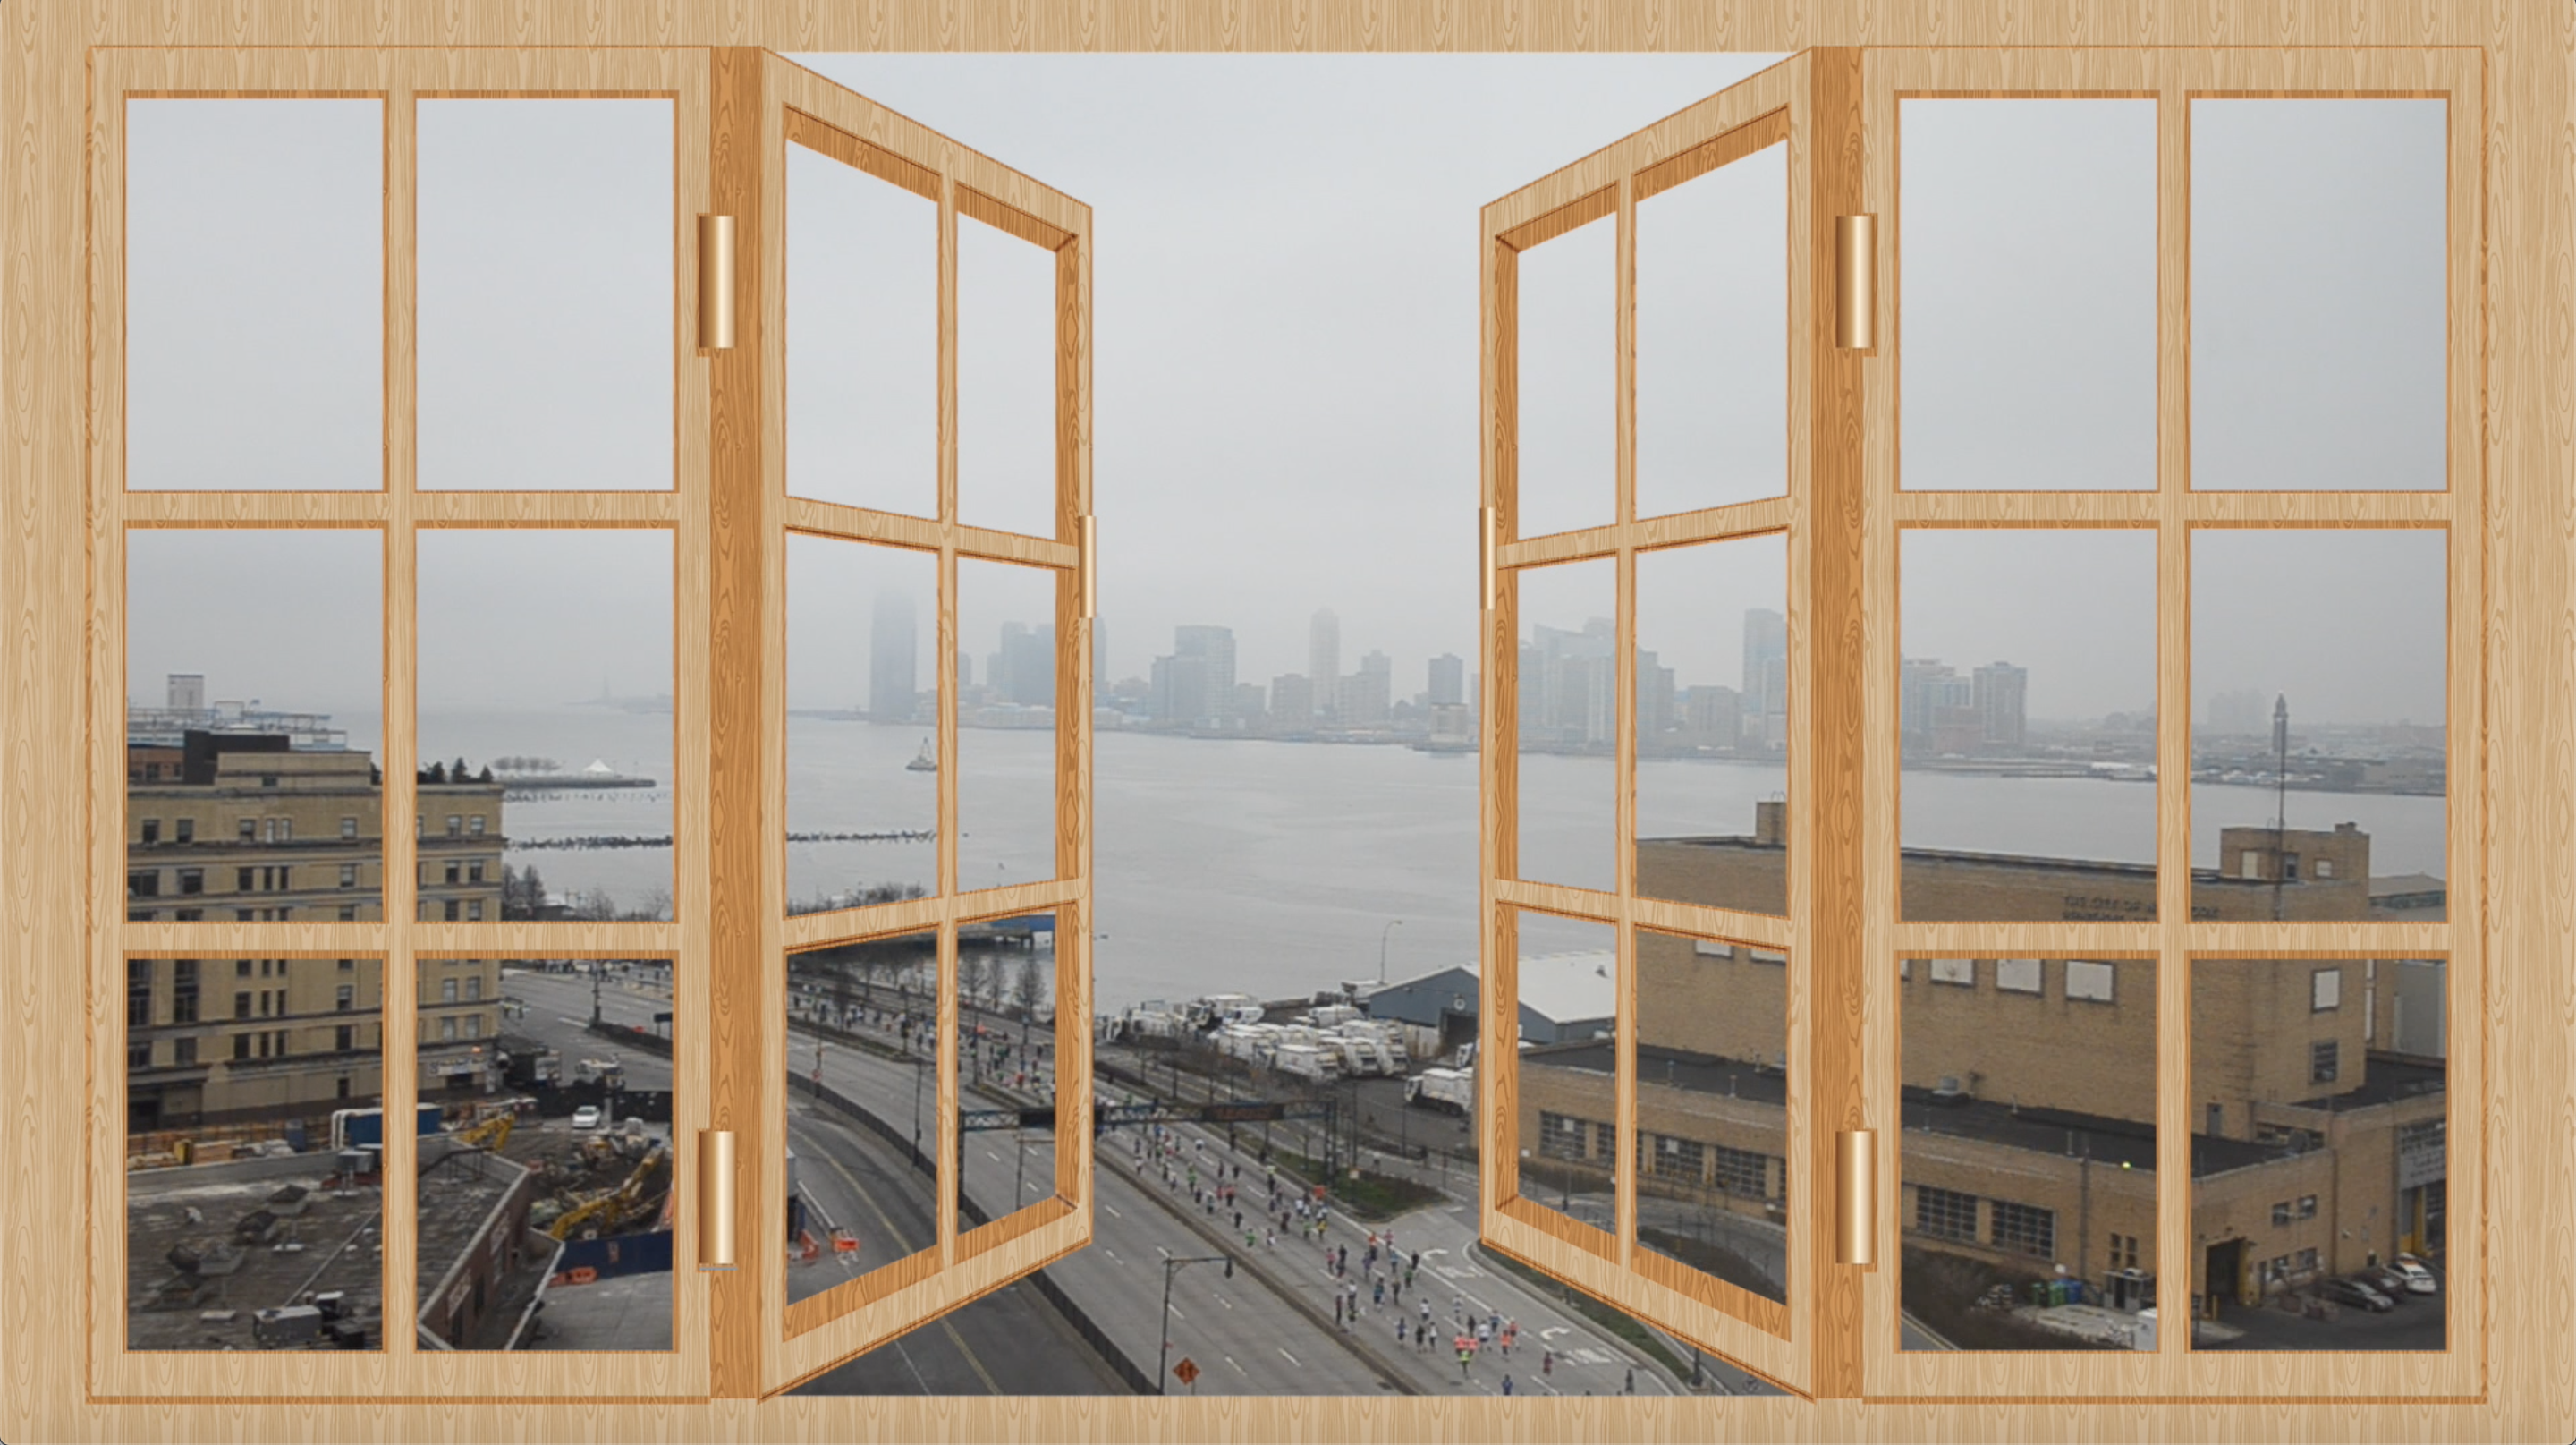 Hudson River - from VSI's AmbientWindow collection